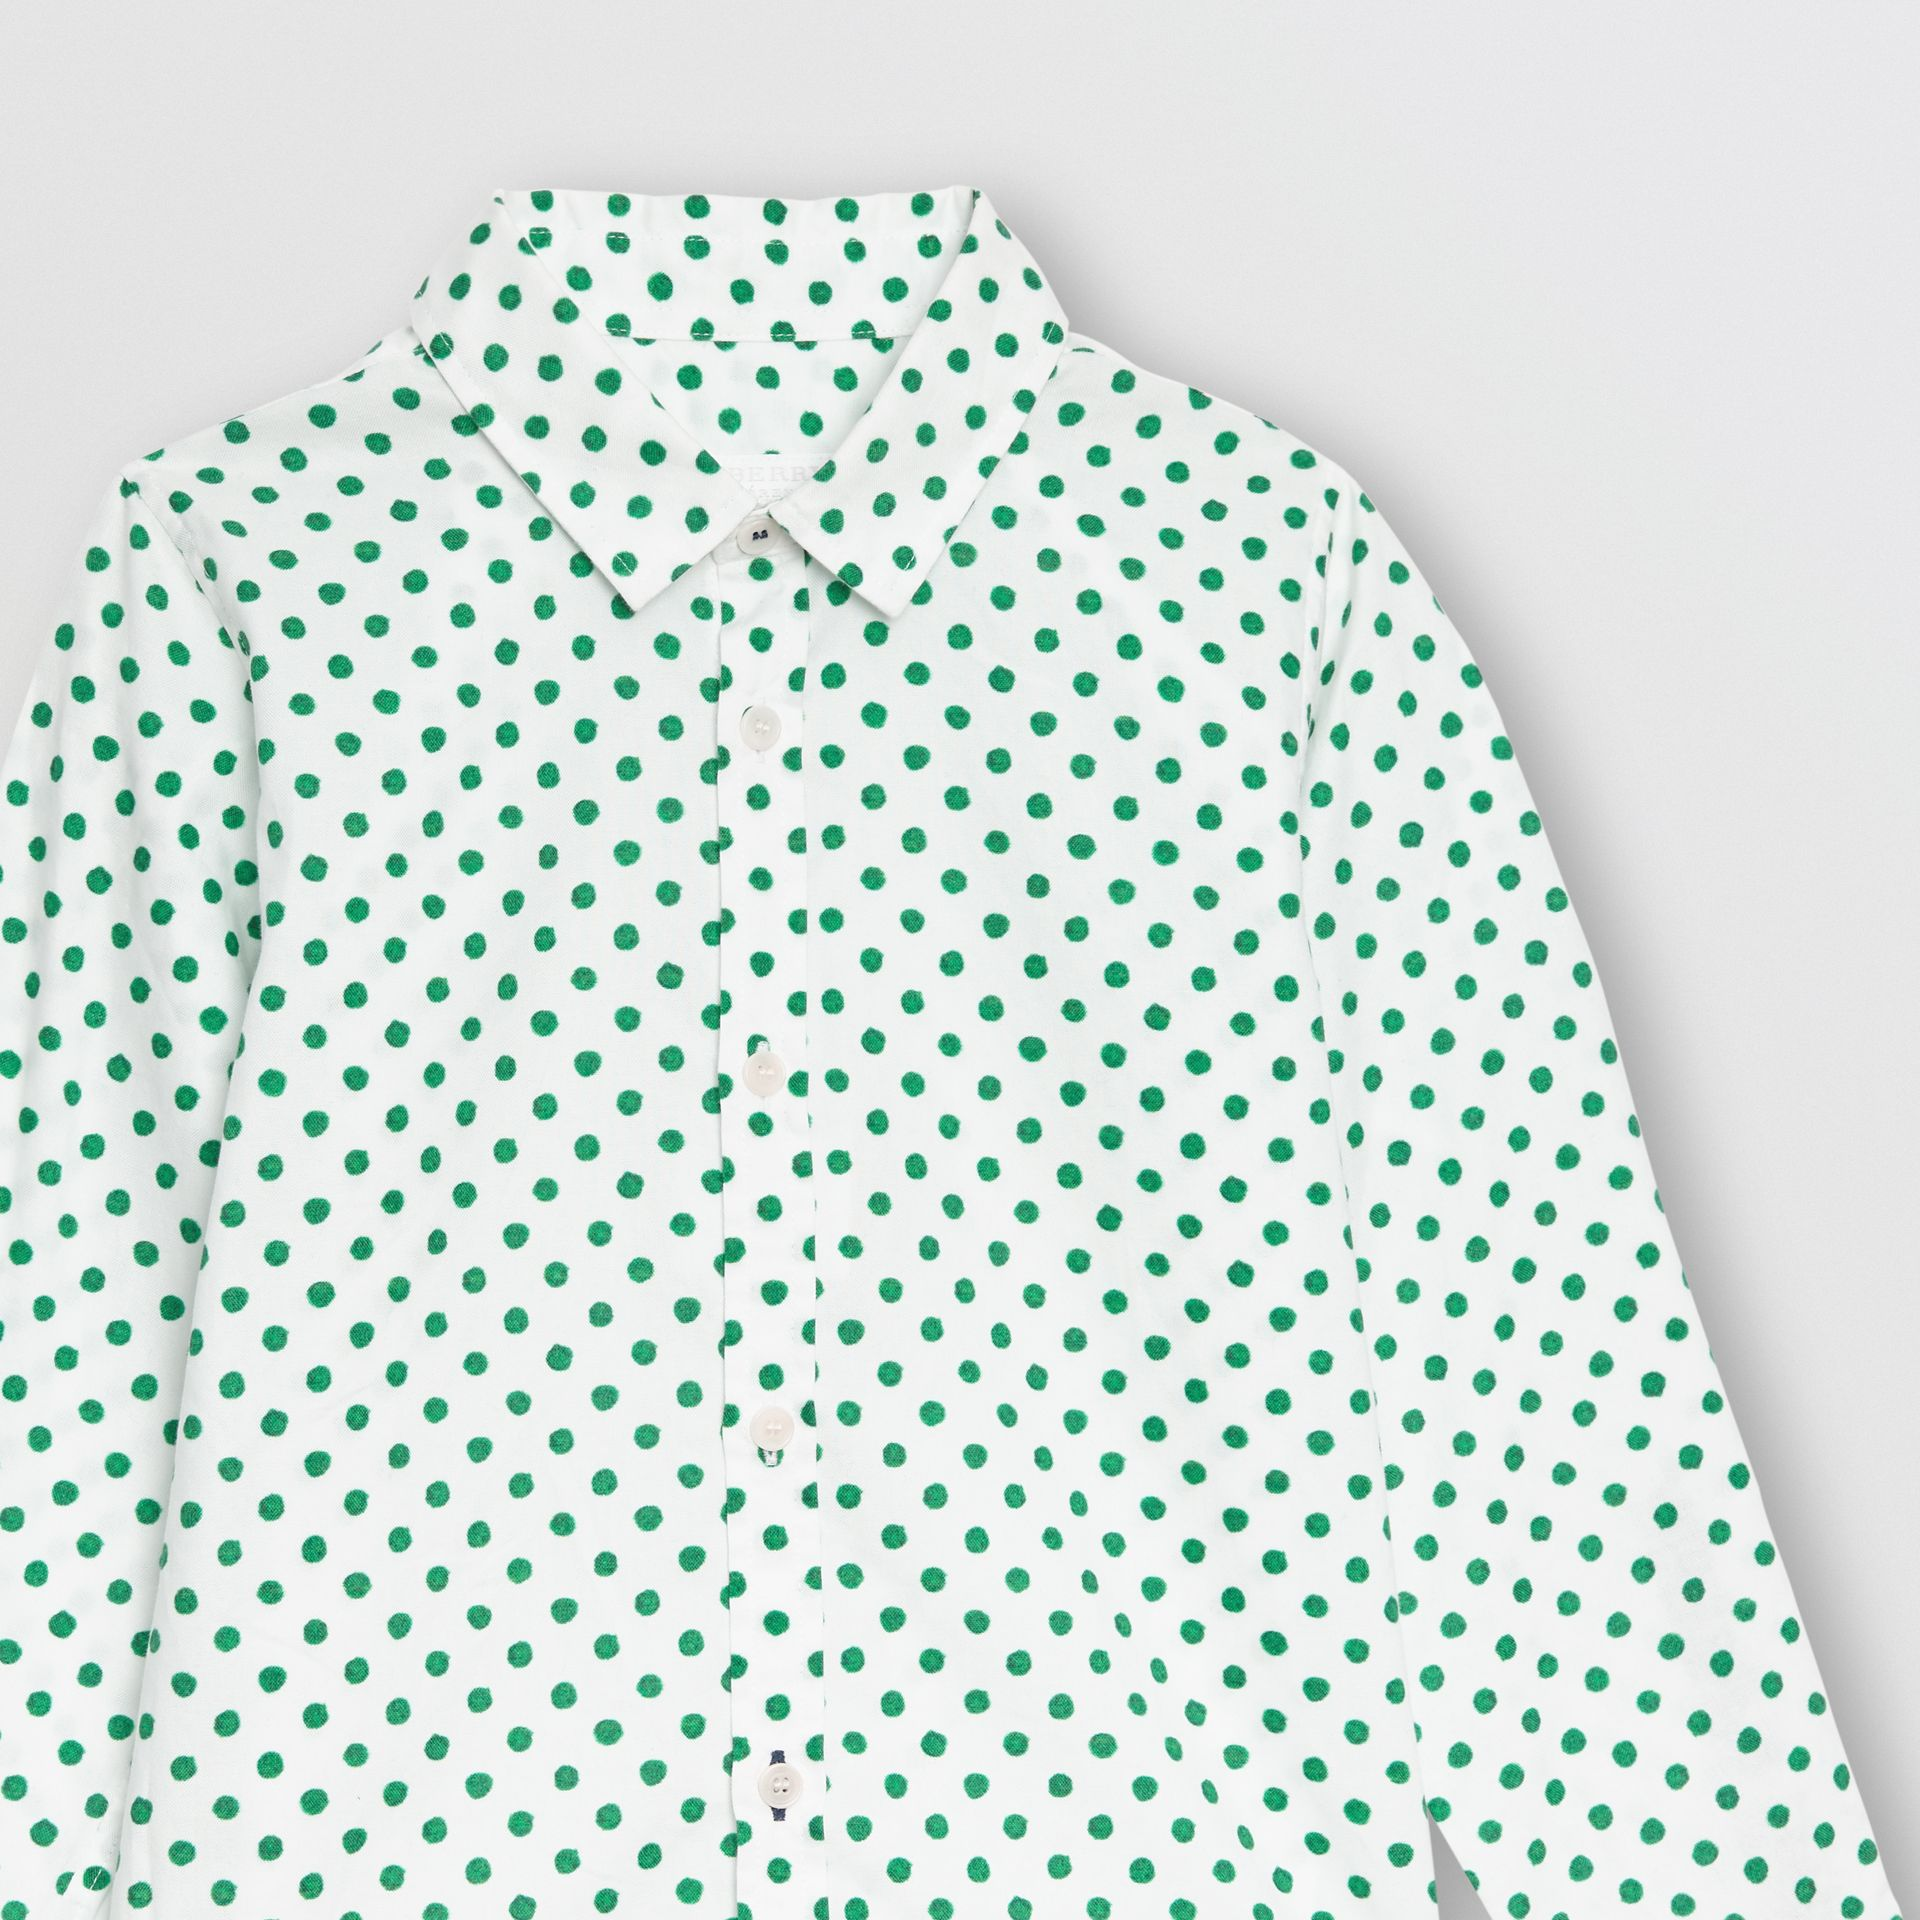 Polka Dot Cotton Oxford Shirt in Emerald Green | Burberry United Kingdom - gallery image 4